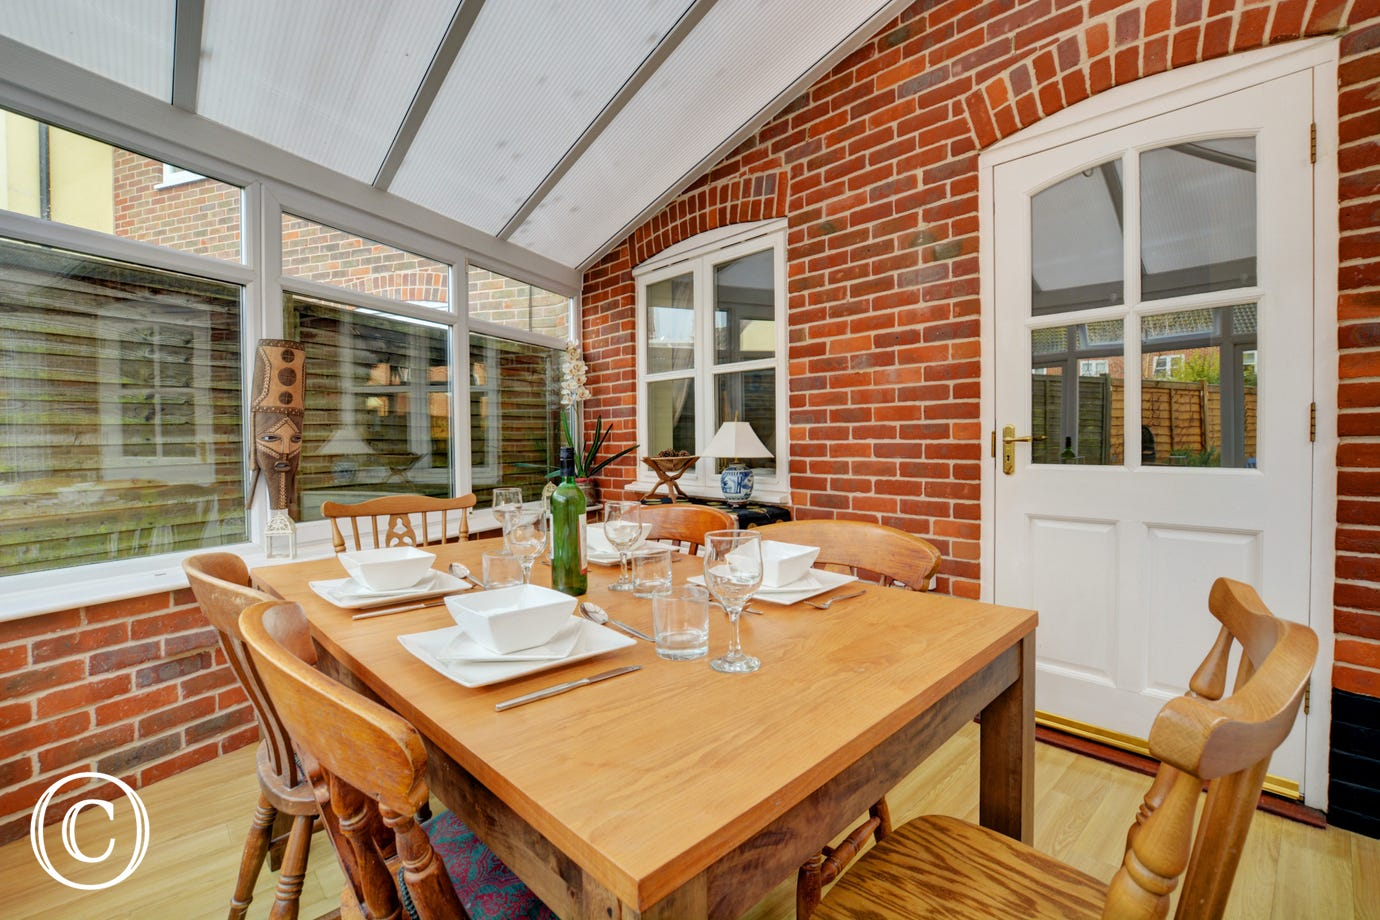 Dining/Conservatory with table and chairs